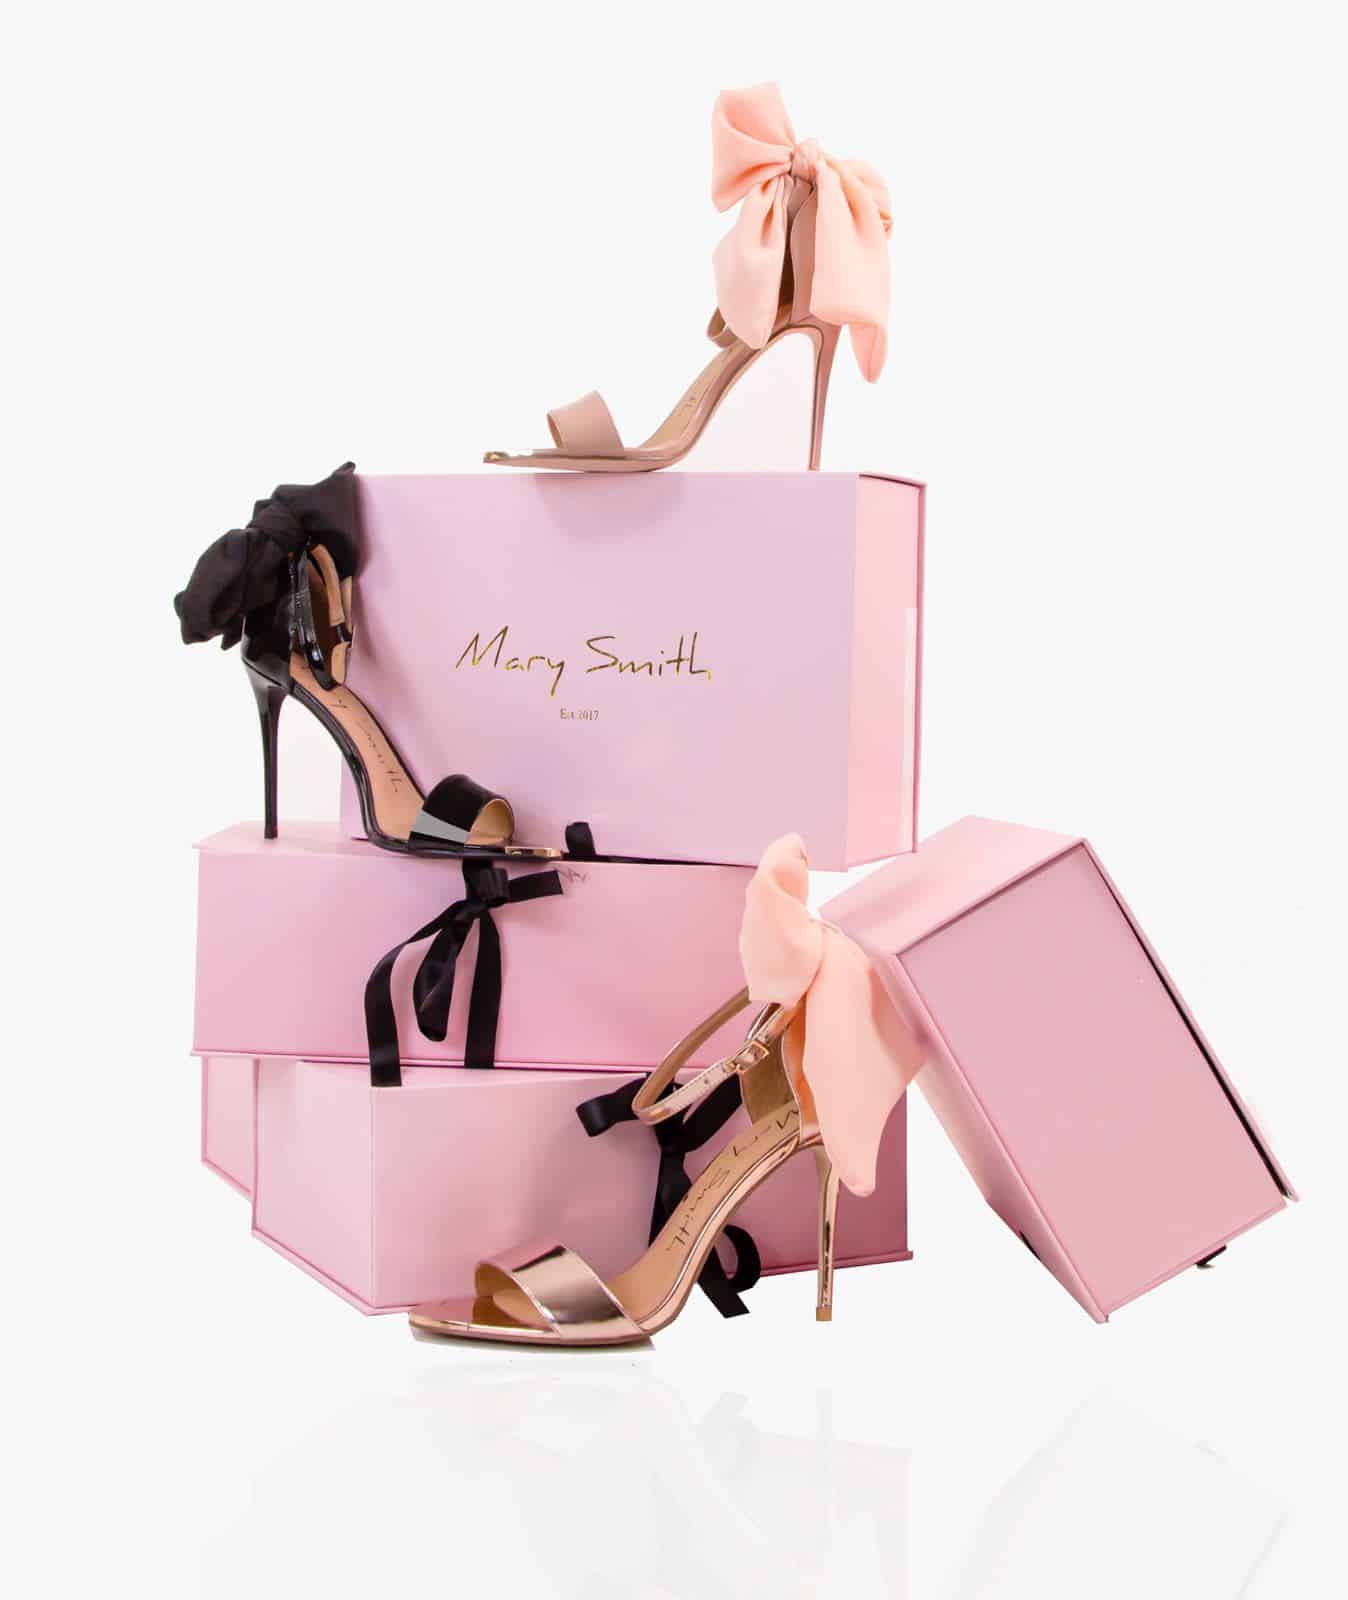 Mary Smith Shoes